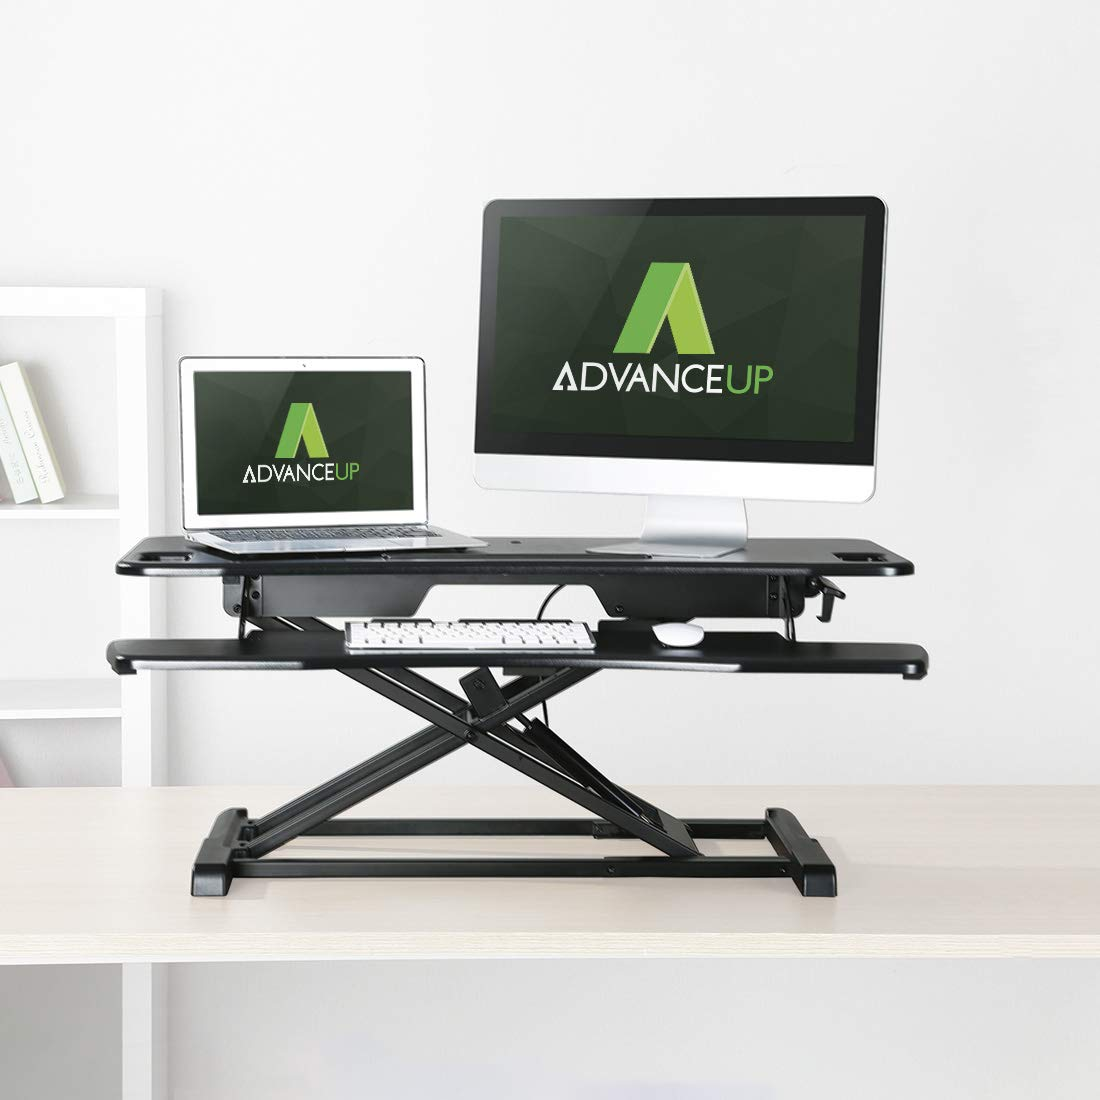 AdvanceUp 2-Tier 37.4 Extra Wide Standing Desk Converter, Instant Height Adjustable Dual Monitor Sit-Stand Workstation, Instantly Convert Any Desk to a Sit-Stand Desk, Gas Spring Riser Converter